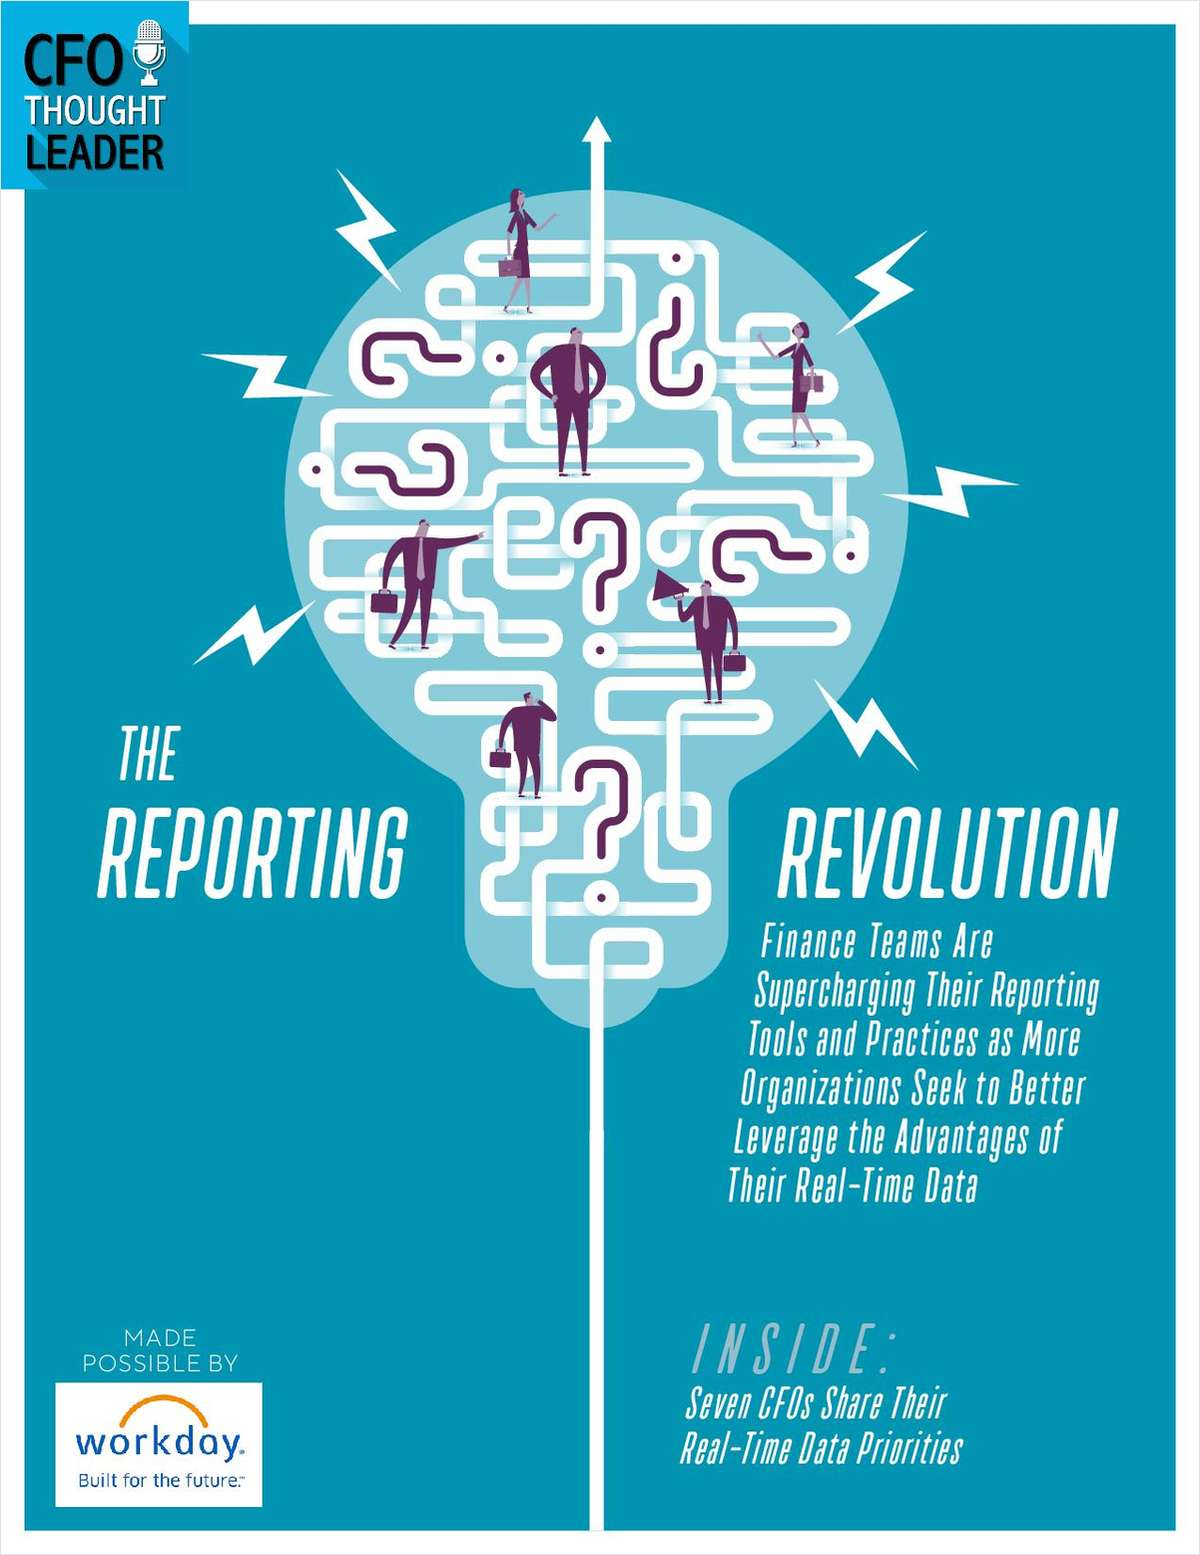 CFO Thought Leader - The Reporting Revolution